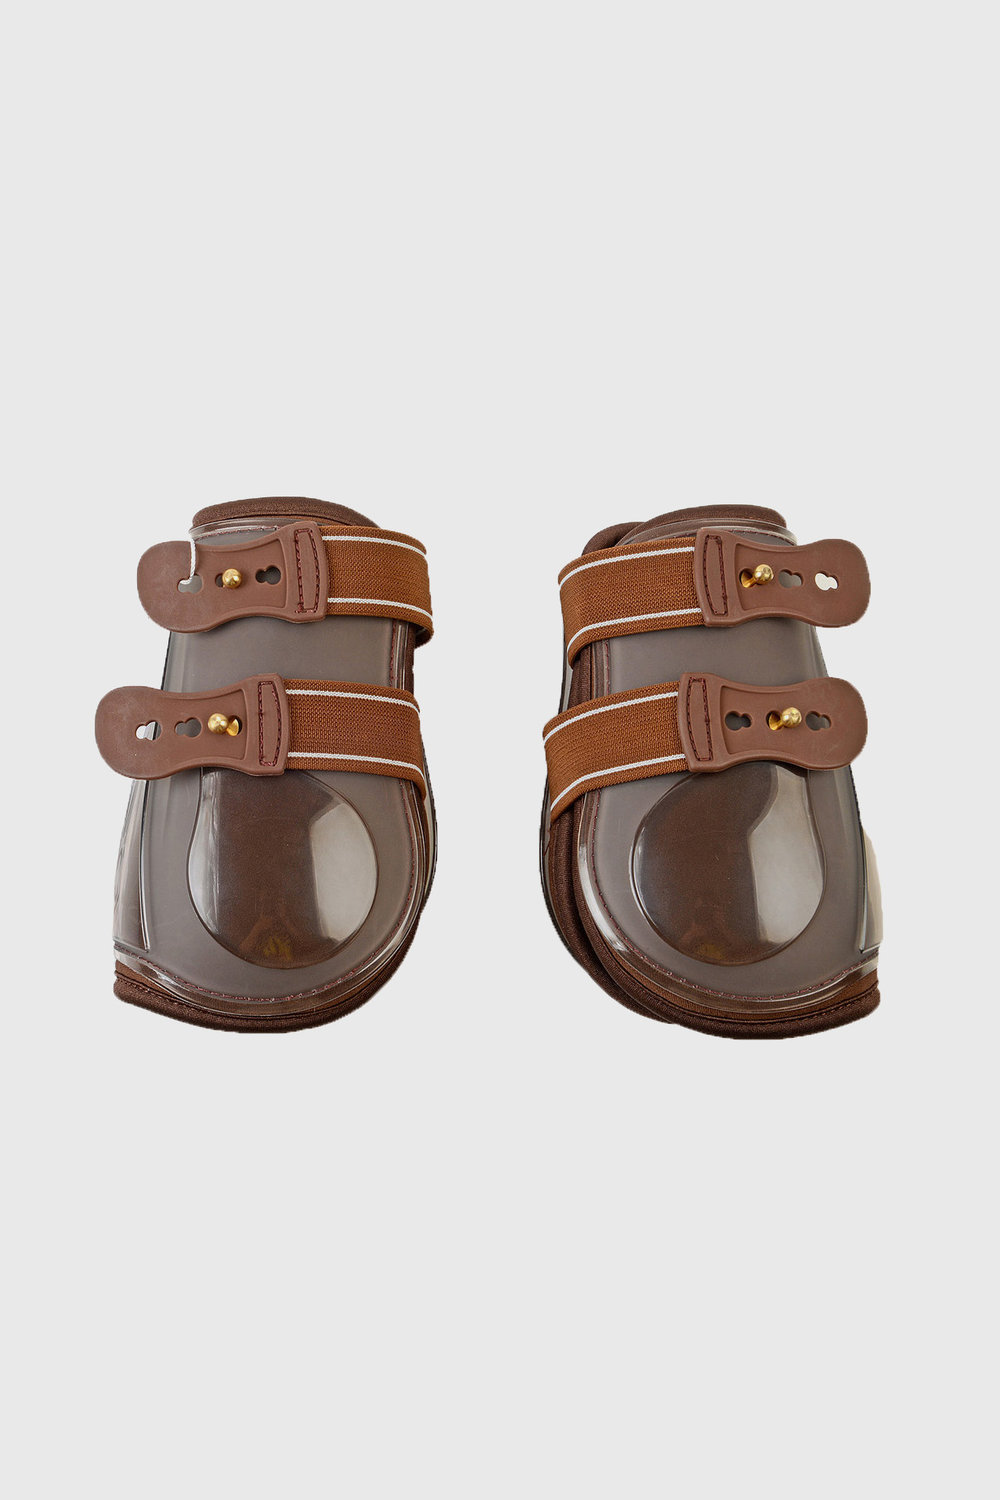 Hind Fetlock Boots with Clasp